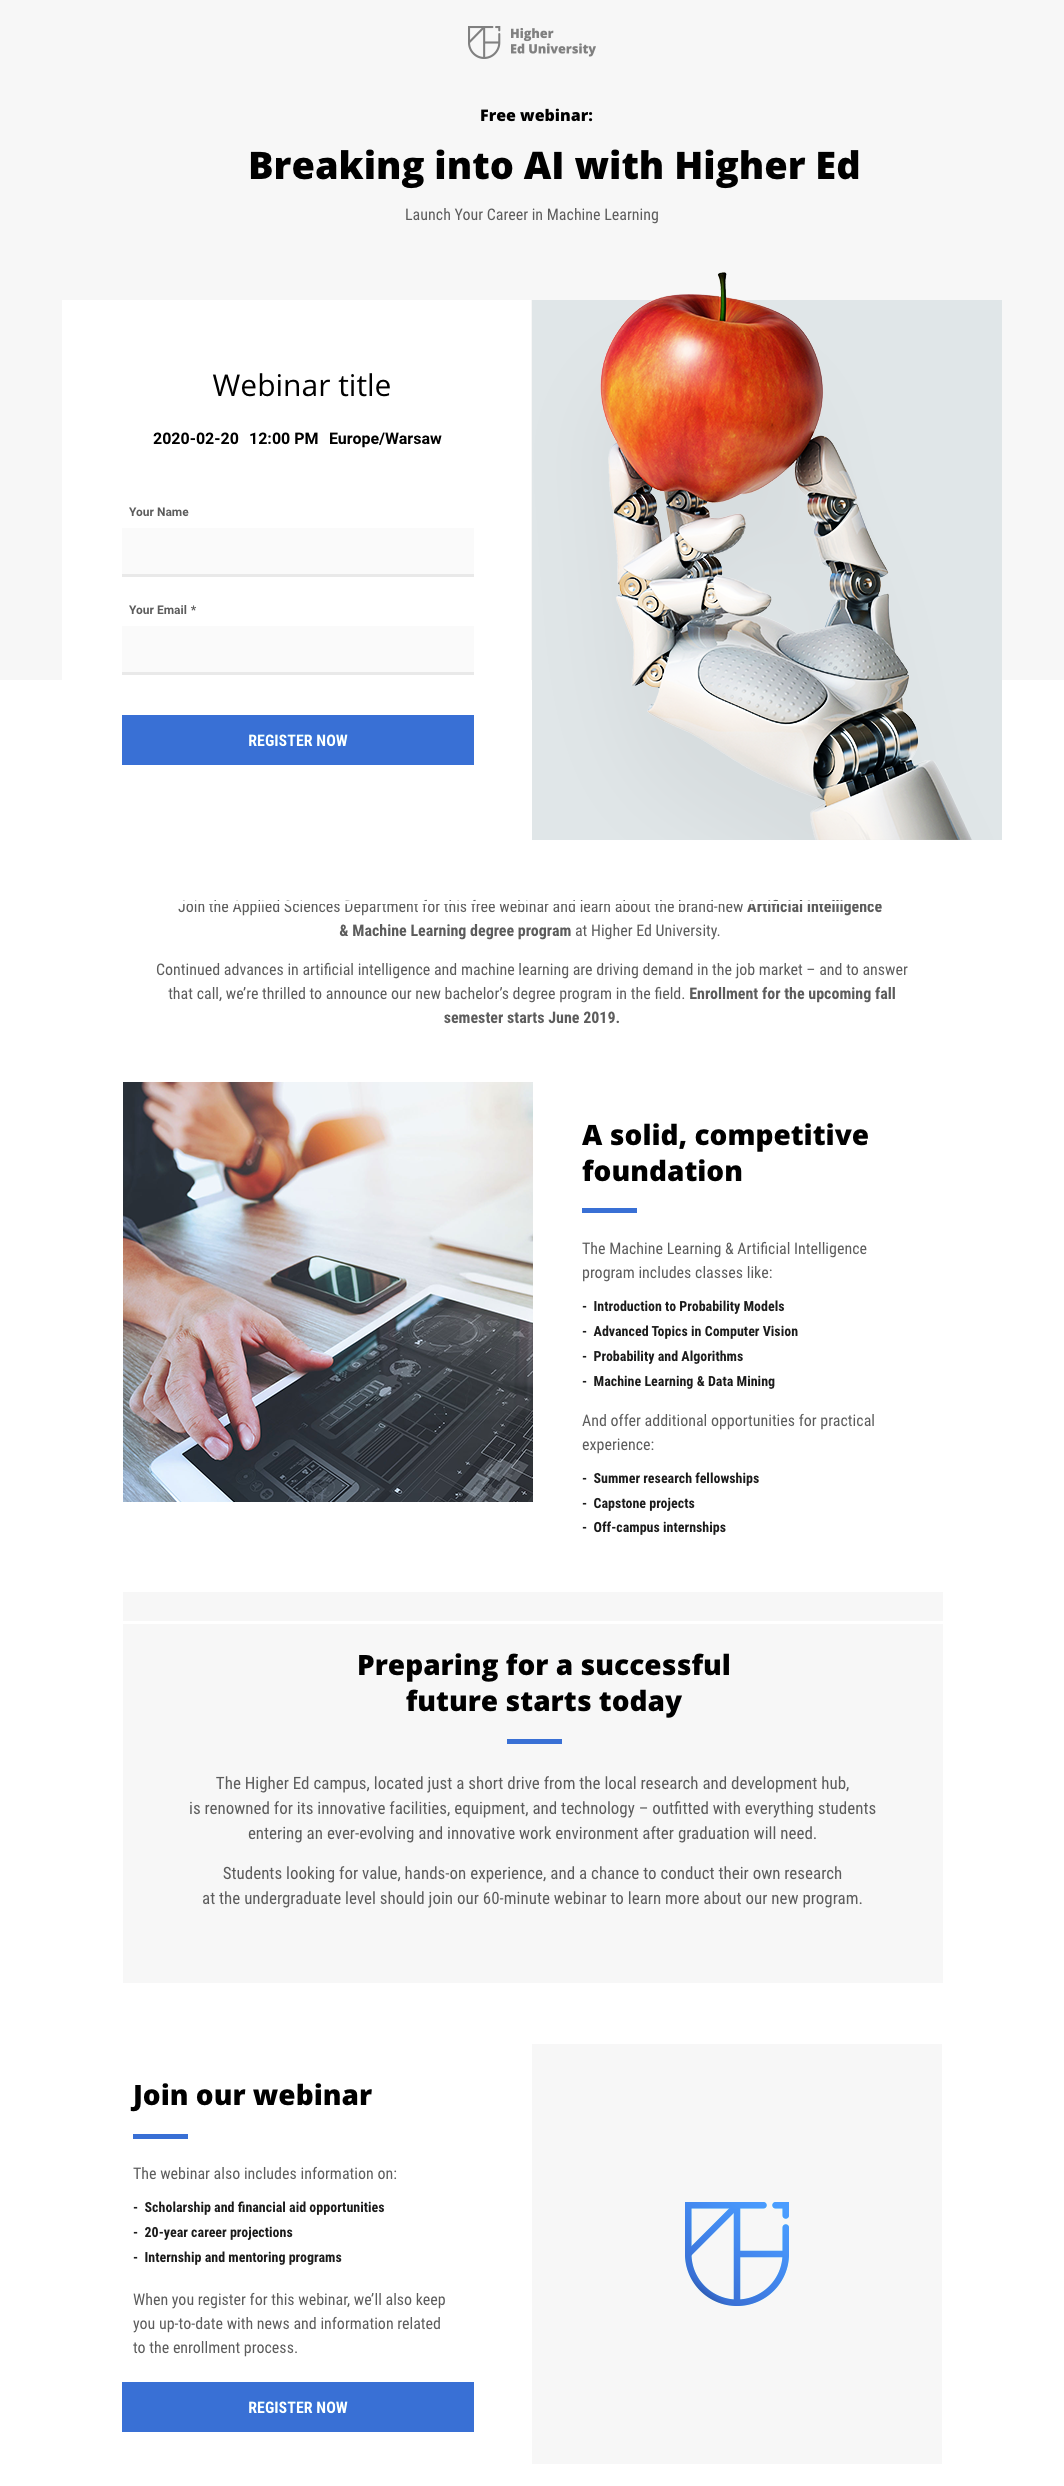 Webinar landing page template available in GetResponse.